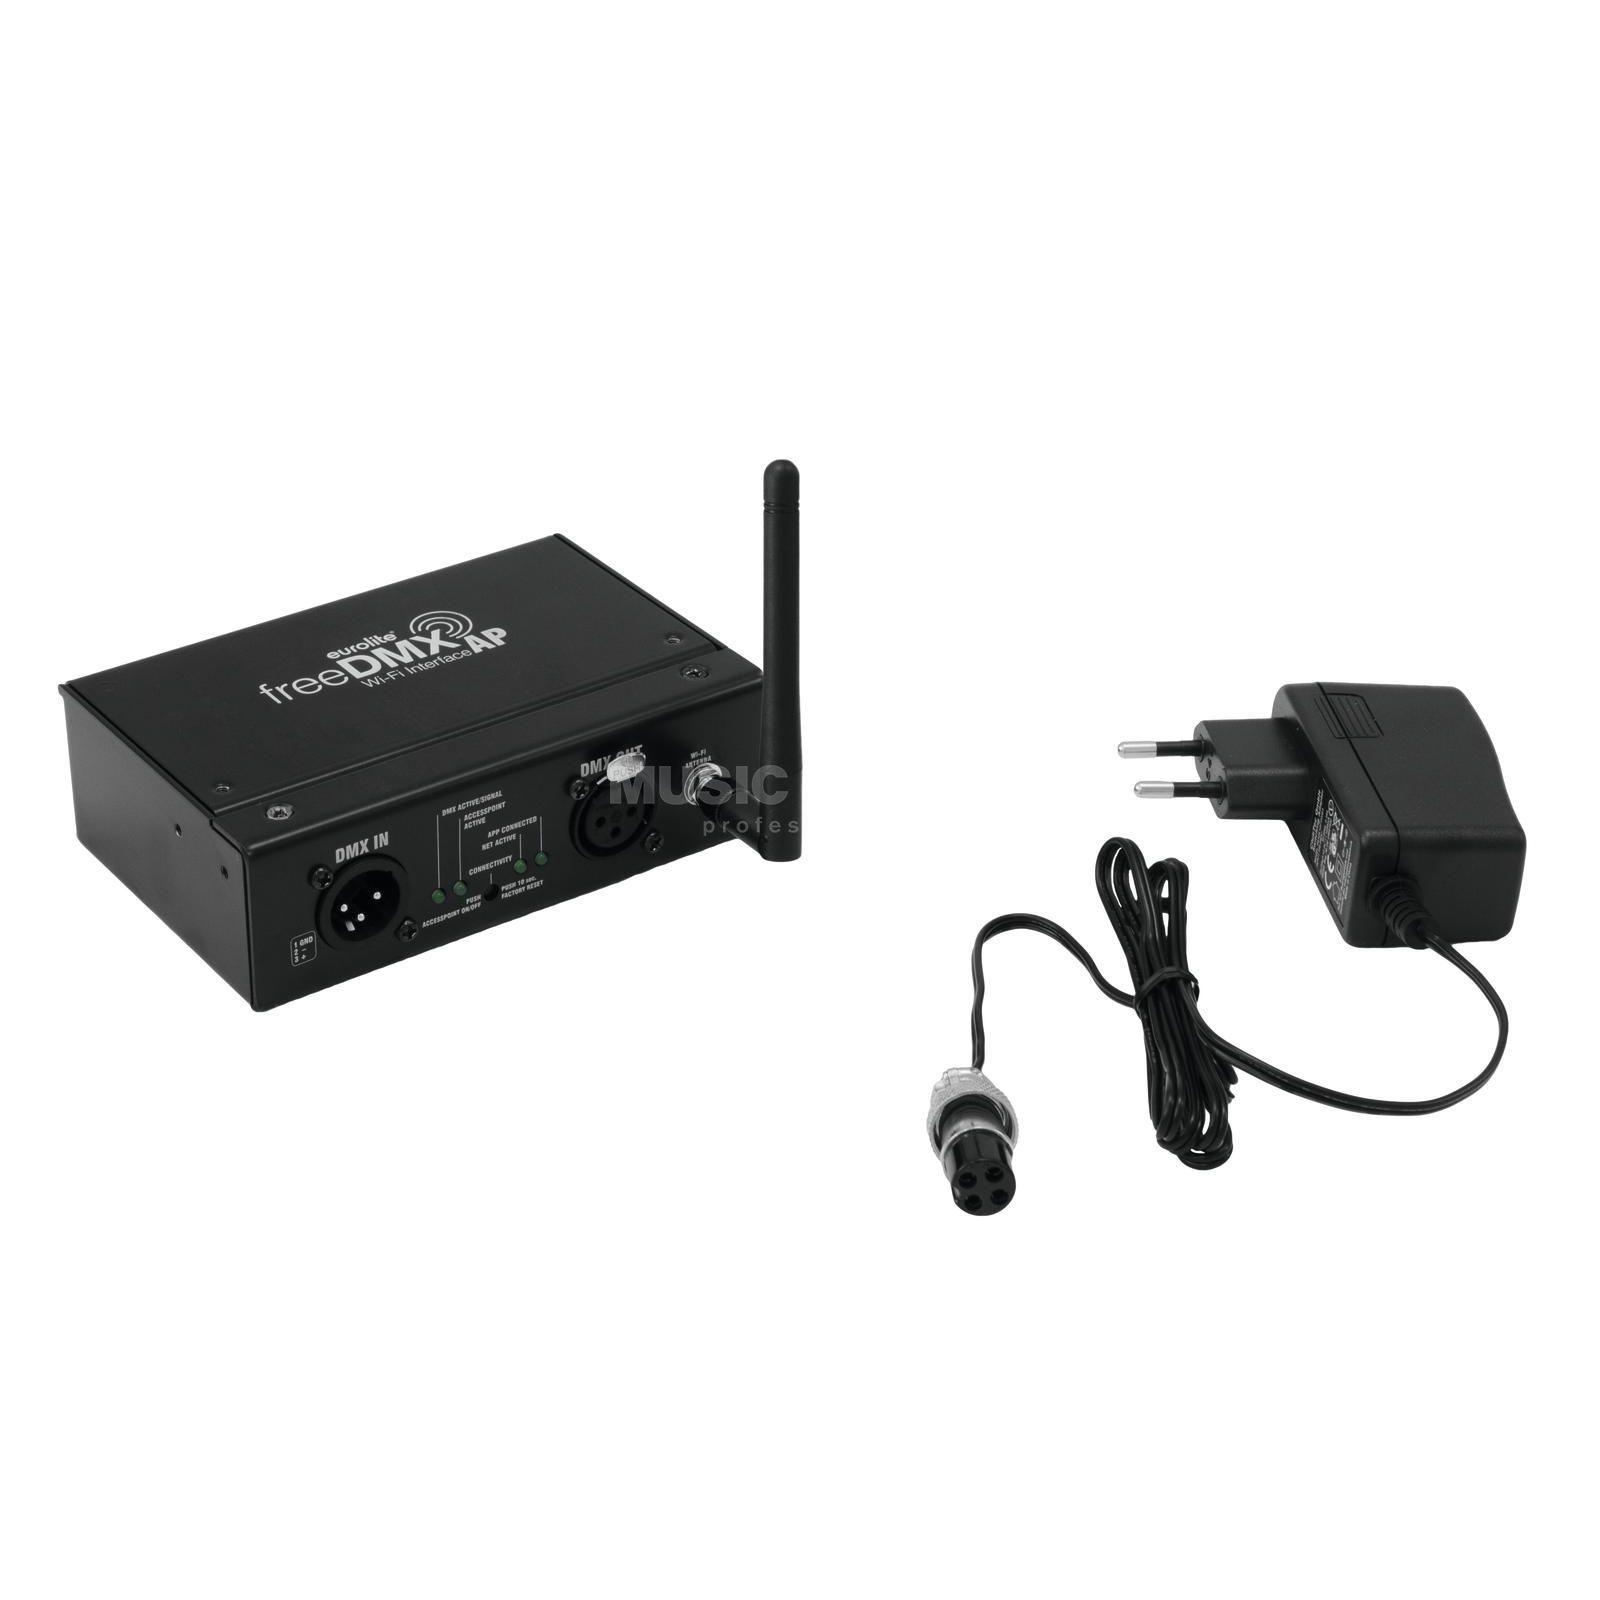 Eurolite freeDMX AP Wi-Fi Interface WLAN-DMX-Interface Produktbillede